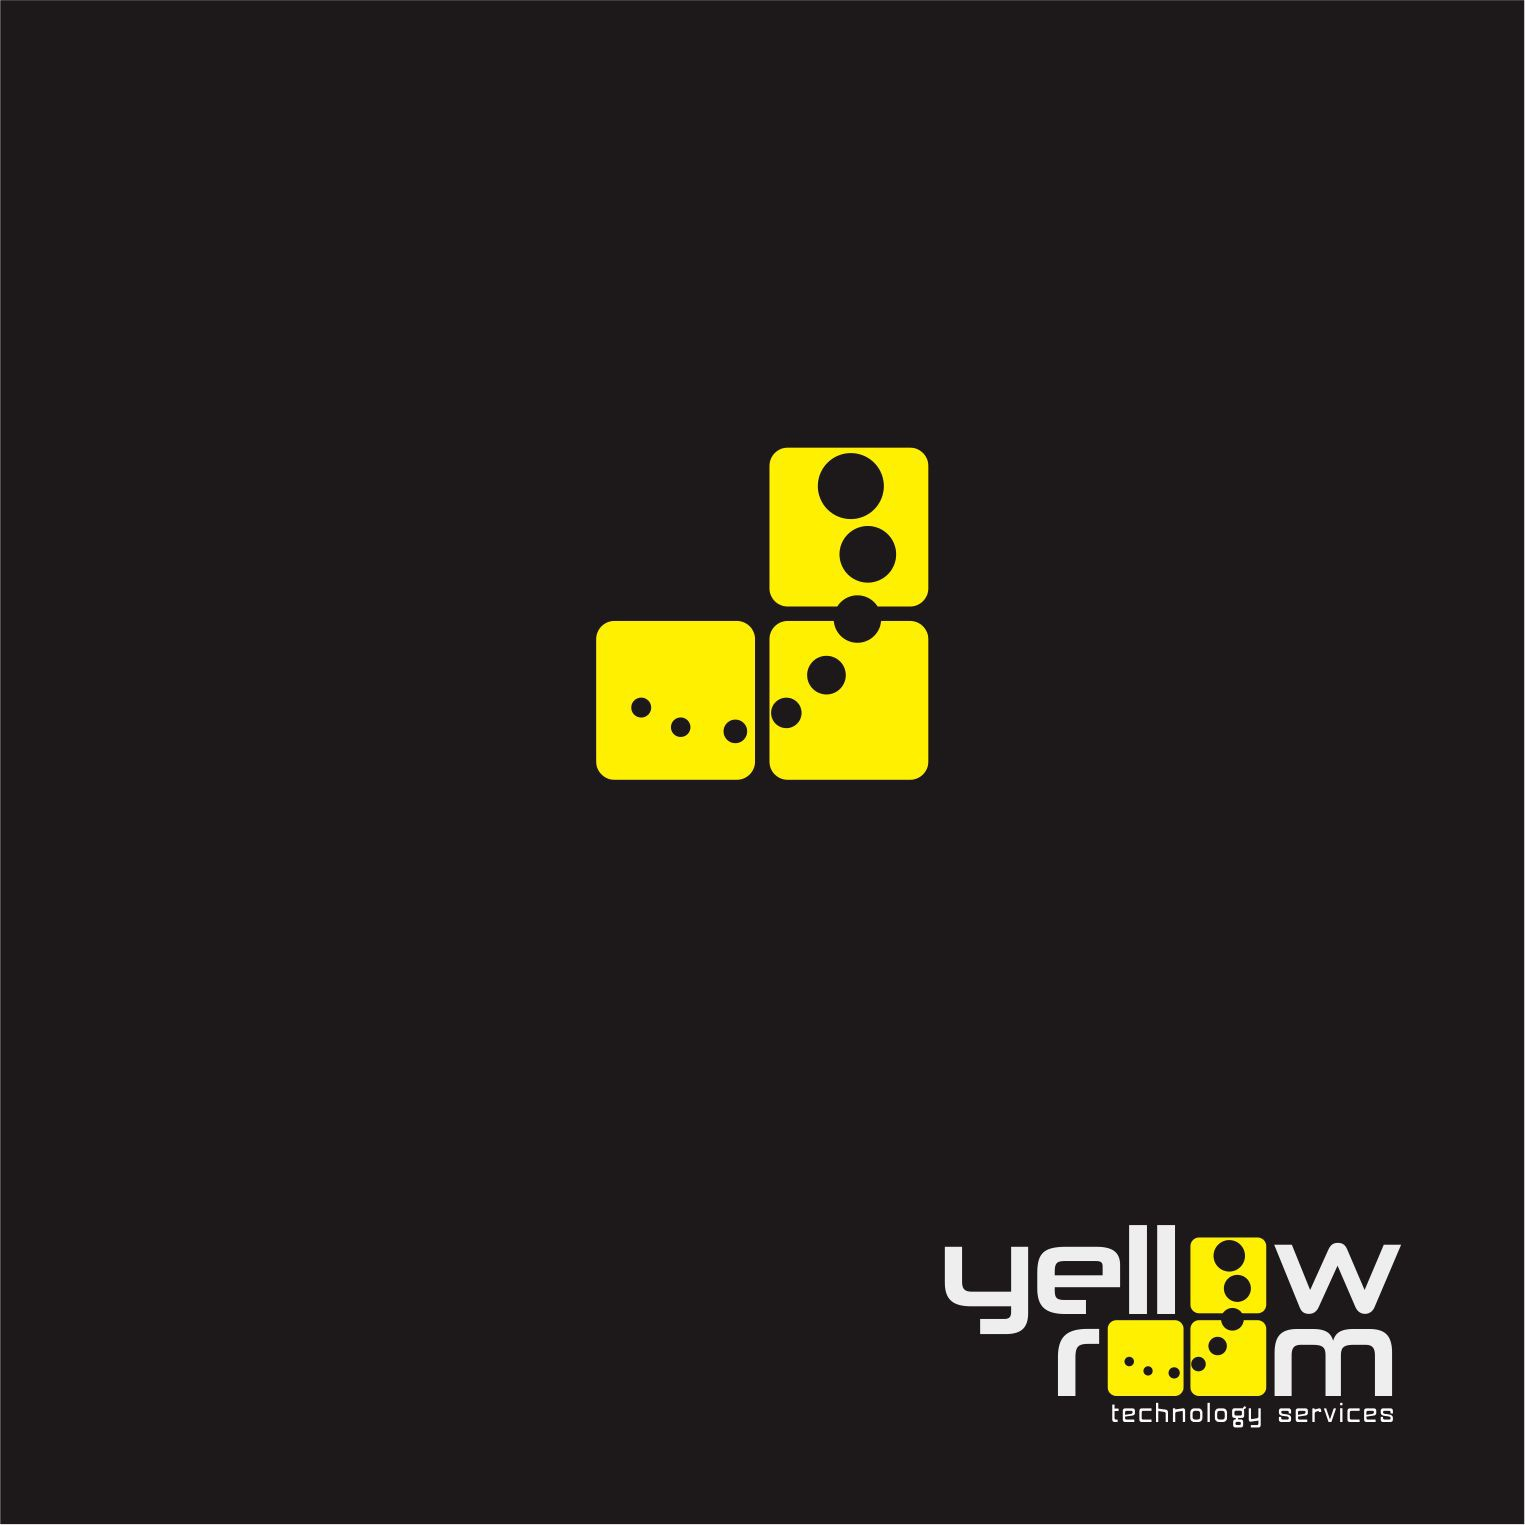 Yellow Room Technology Services needs a logo